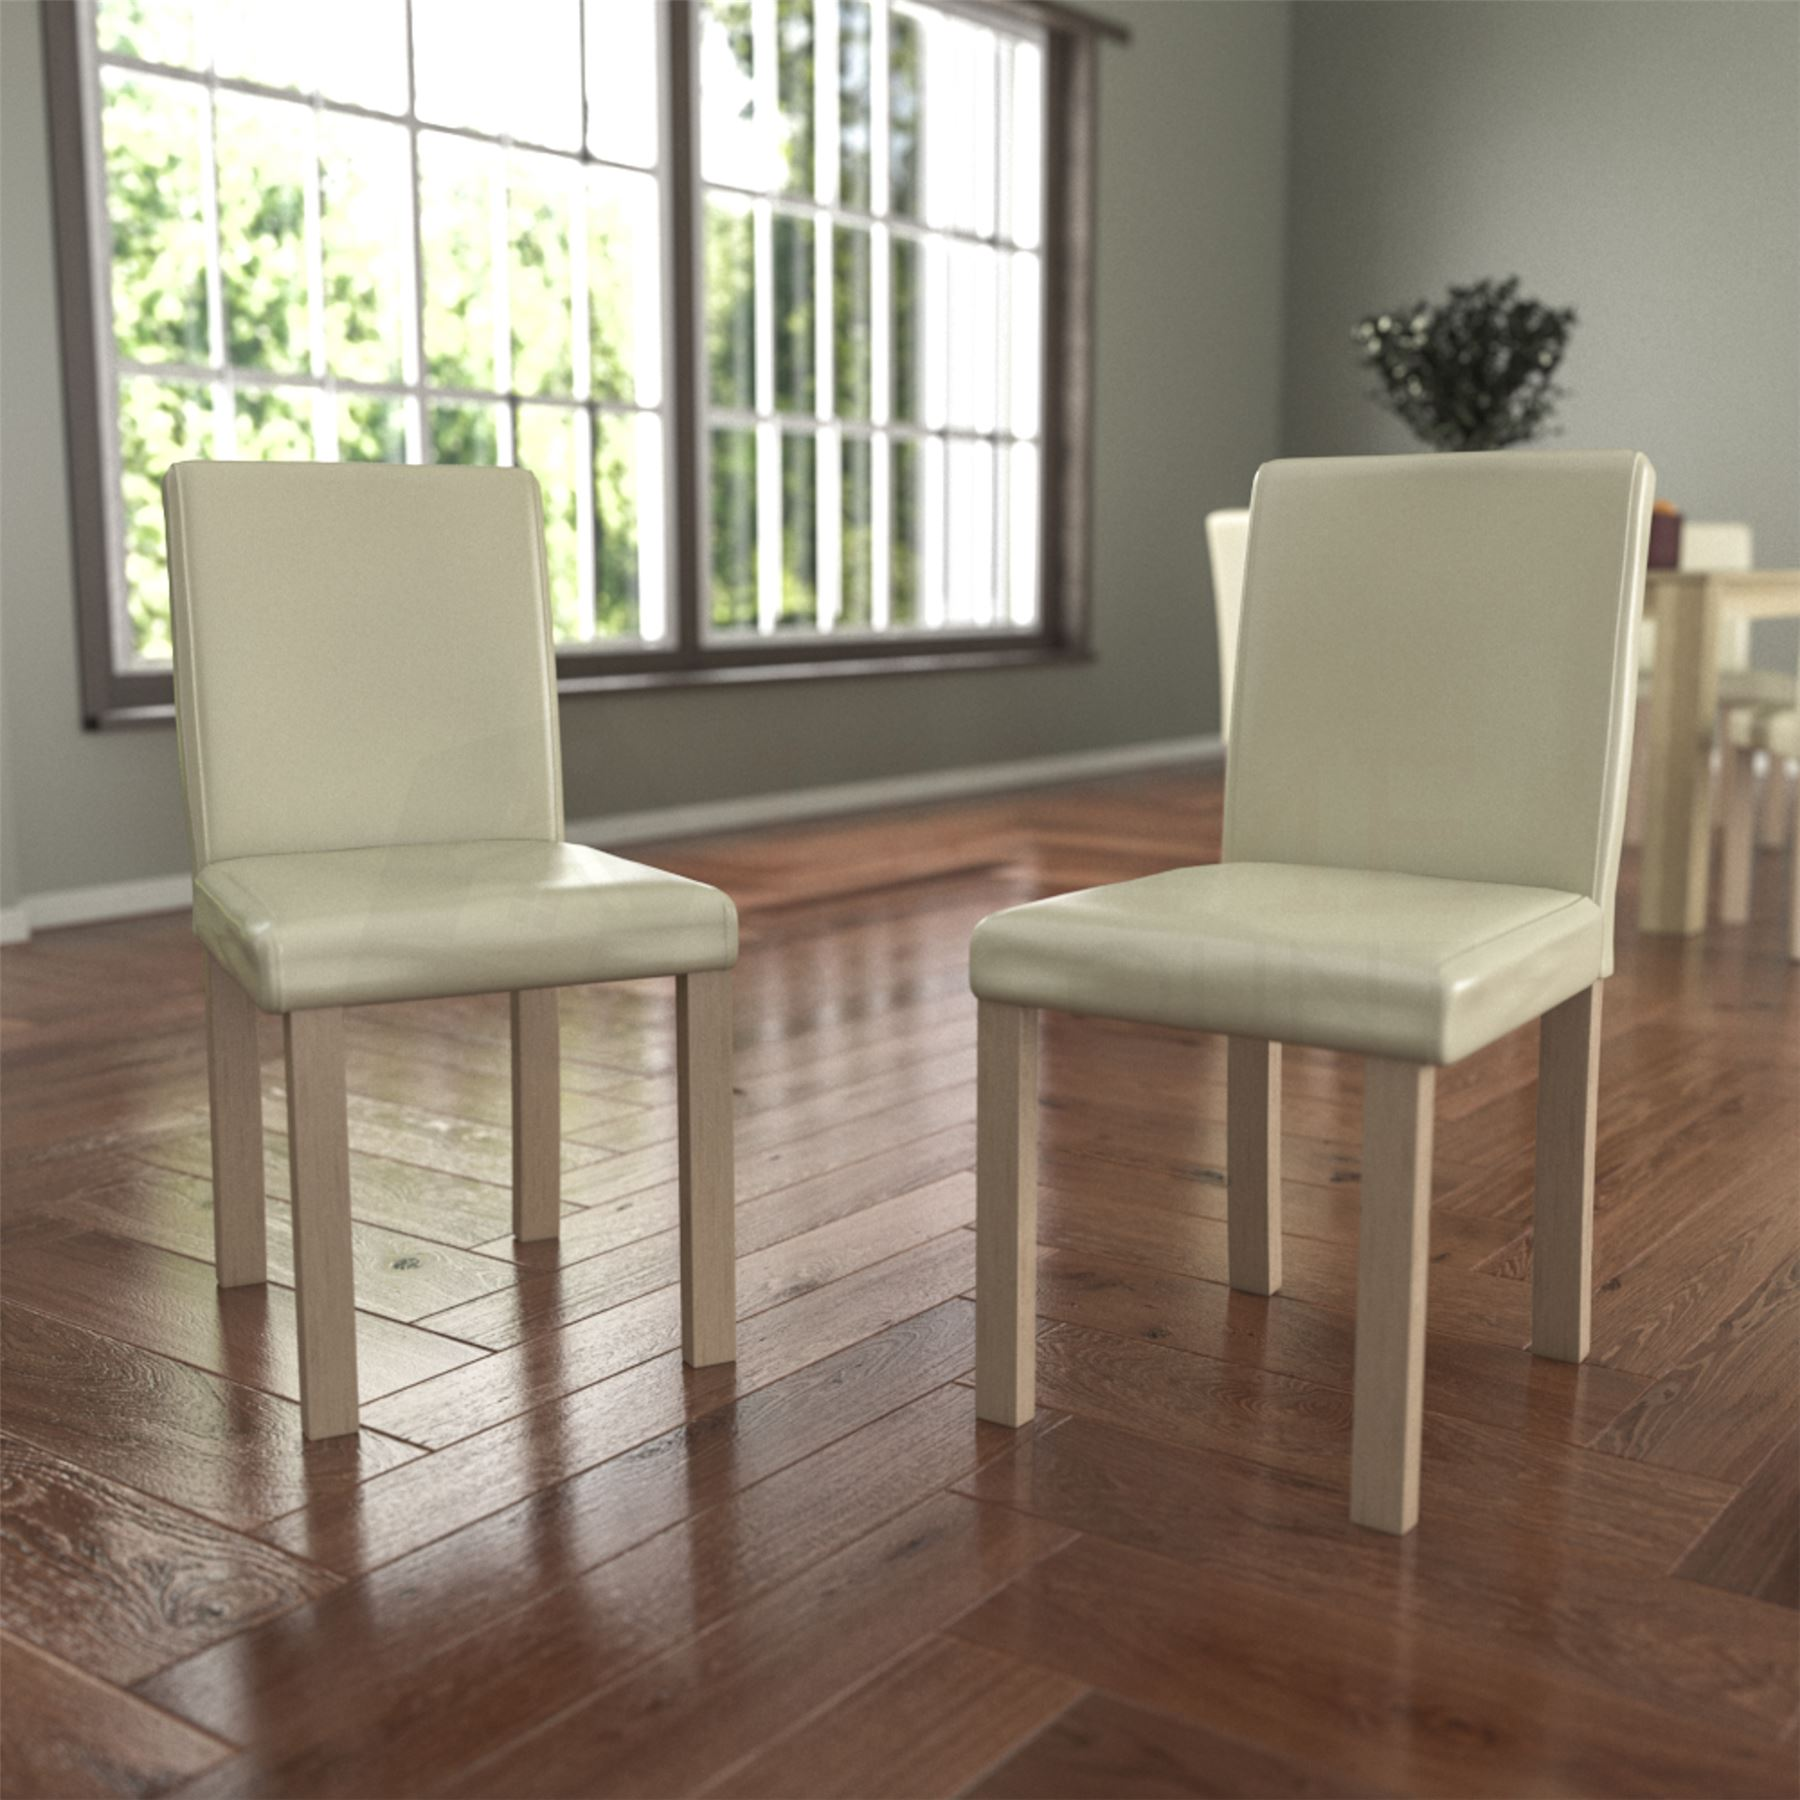 dining table and chairs 6 seat set pu faux leather dining